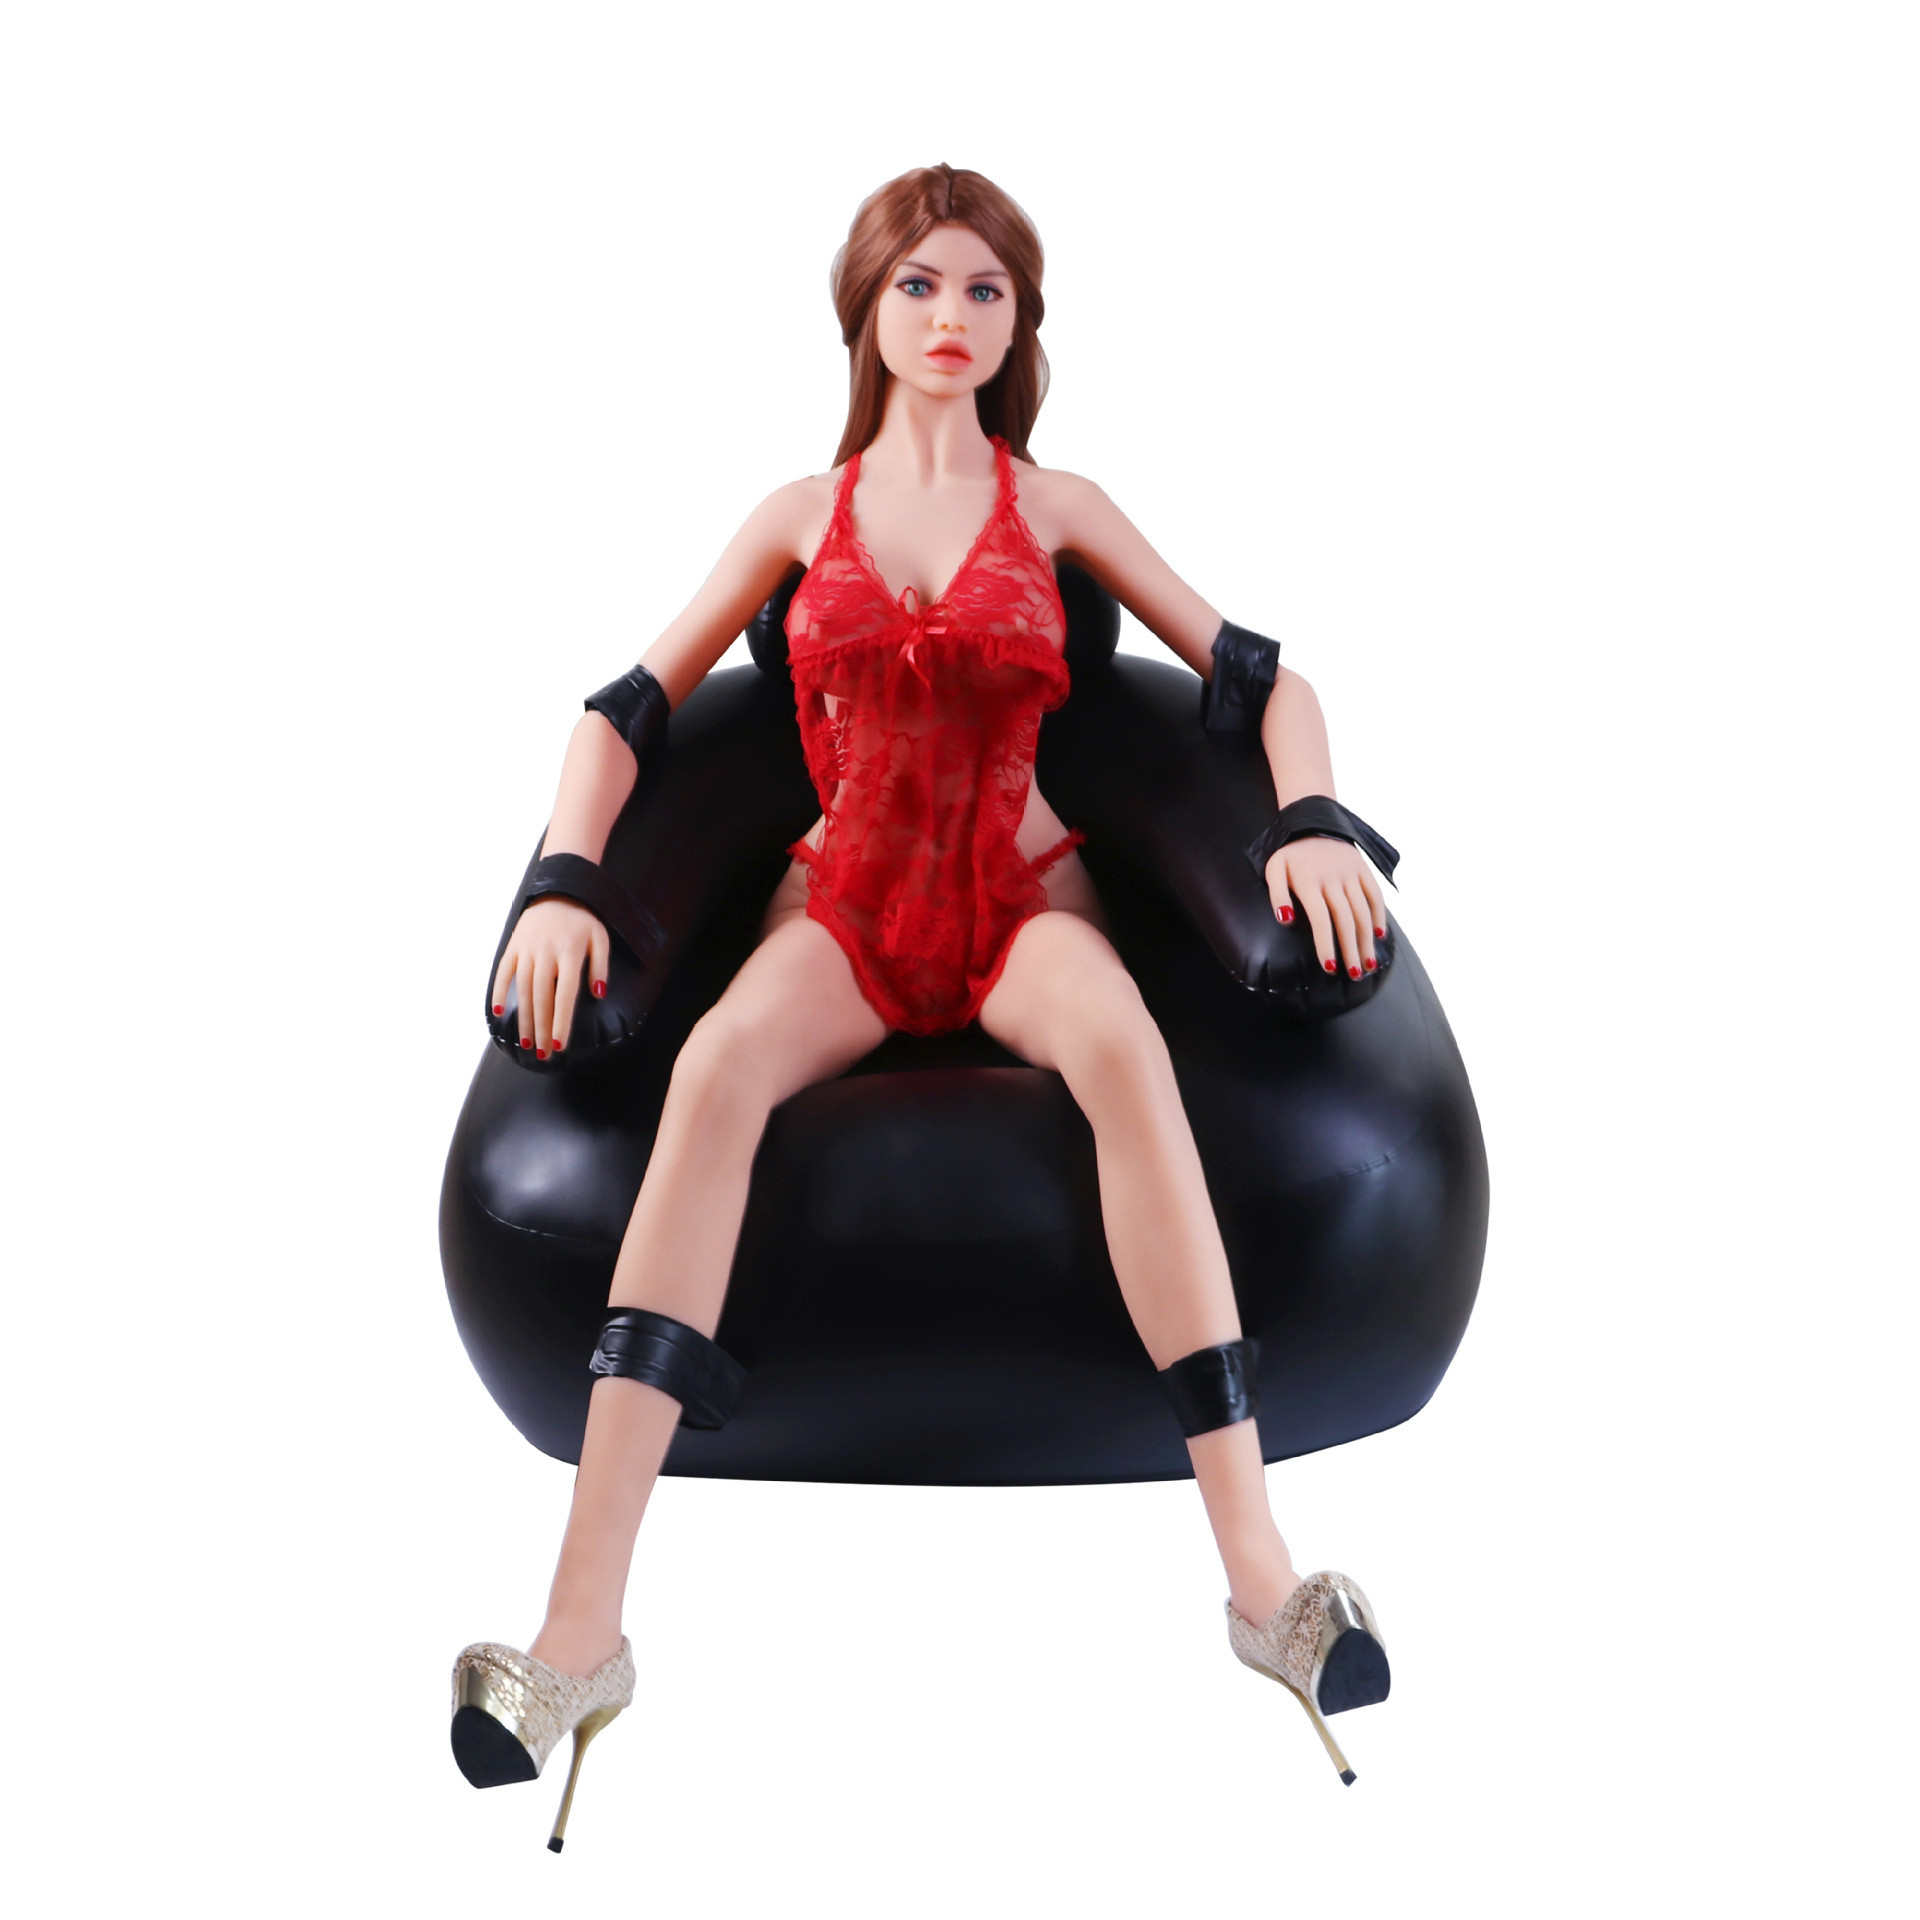 Sex Inflatable Sofa For The Couple,Erotic Bdsm Bondage Type Masturbation Sex Inflatable Furniture Inflatable Chair